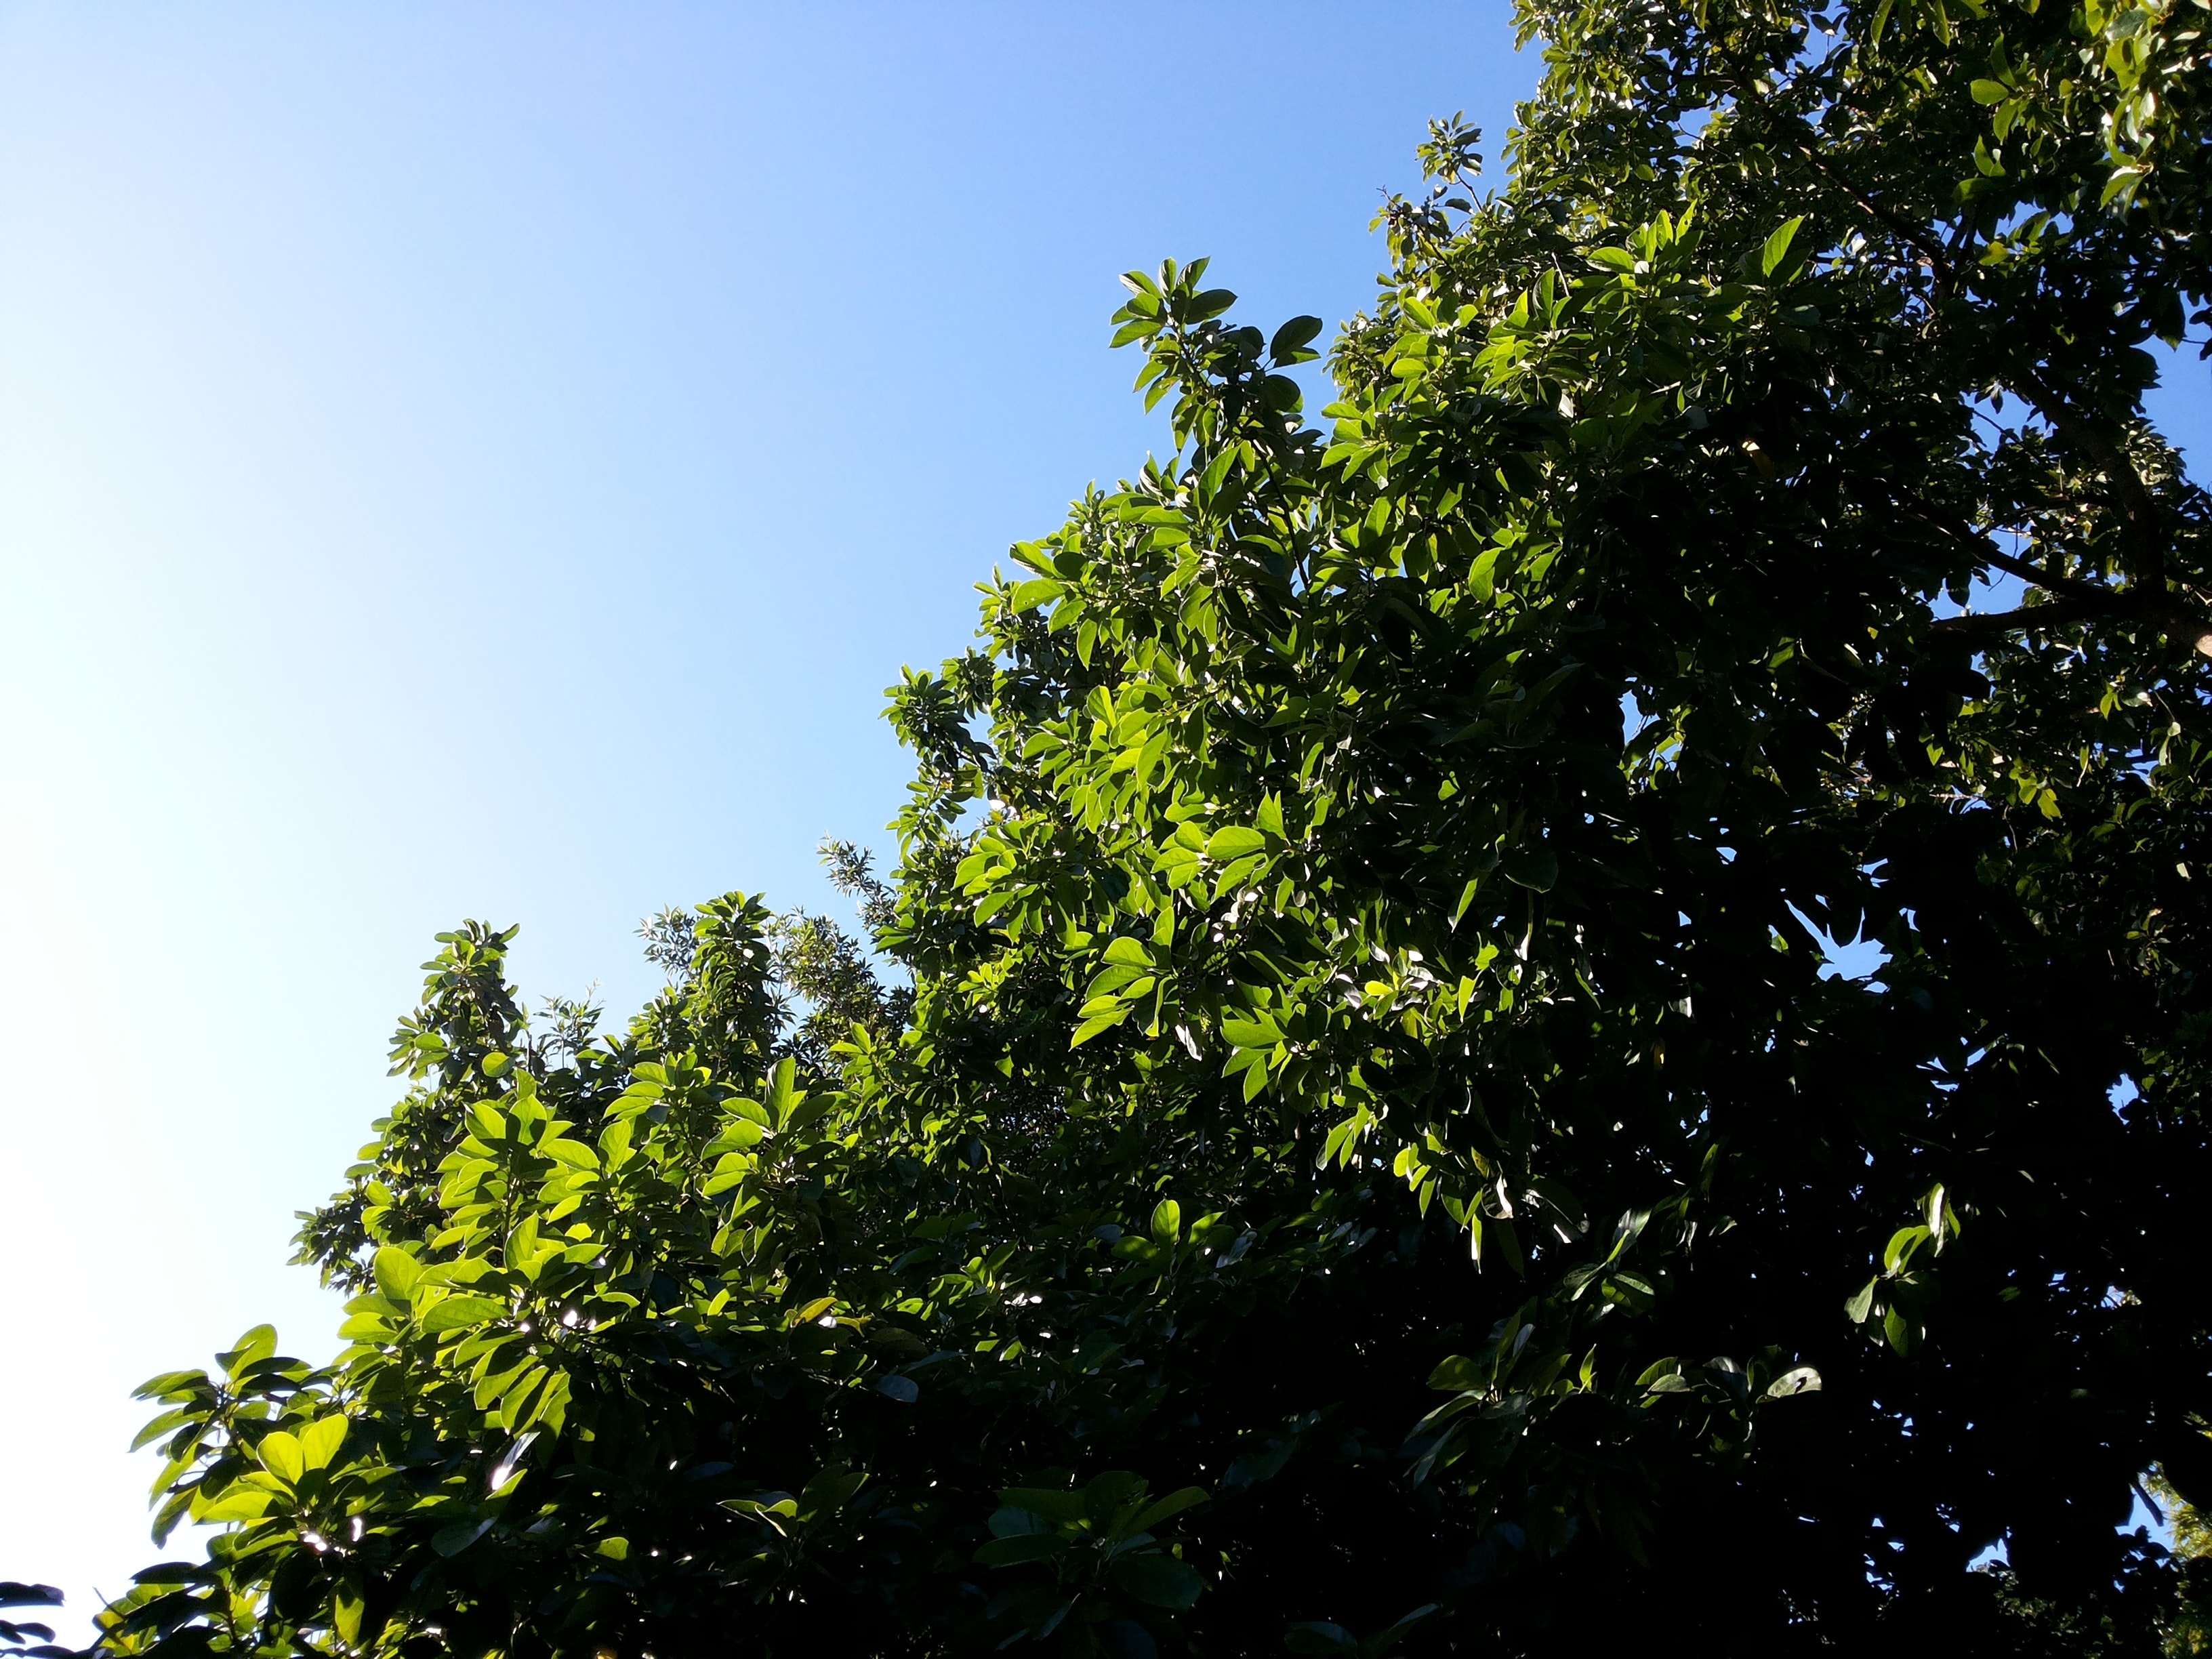 A low-angle shot of the top branches of a green leafy tree against a blue sky